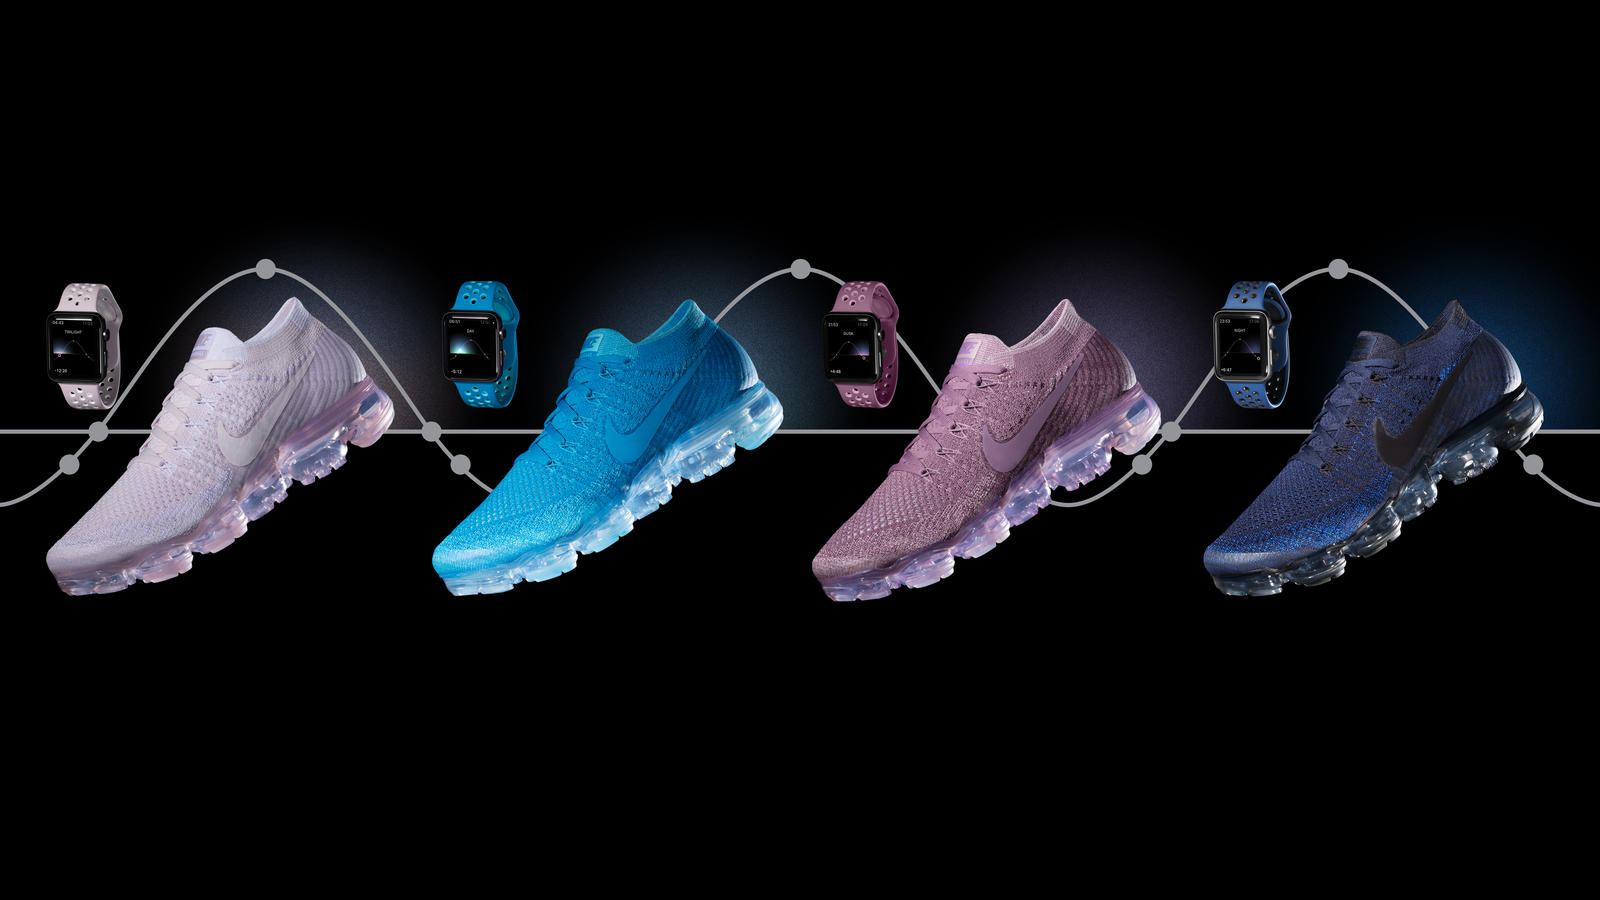 Nike Vapormax DTN Direction1 Full Set 16x9 hd 1600